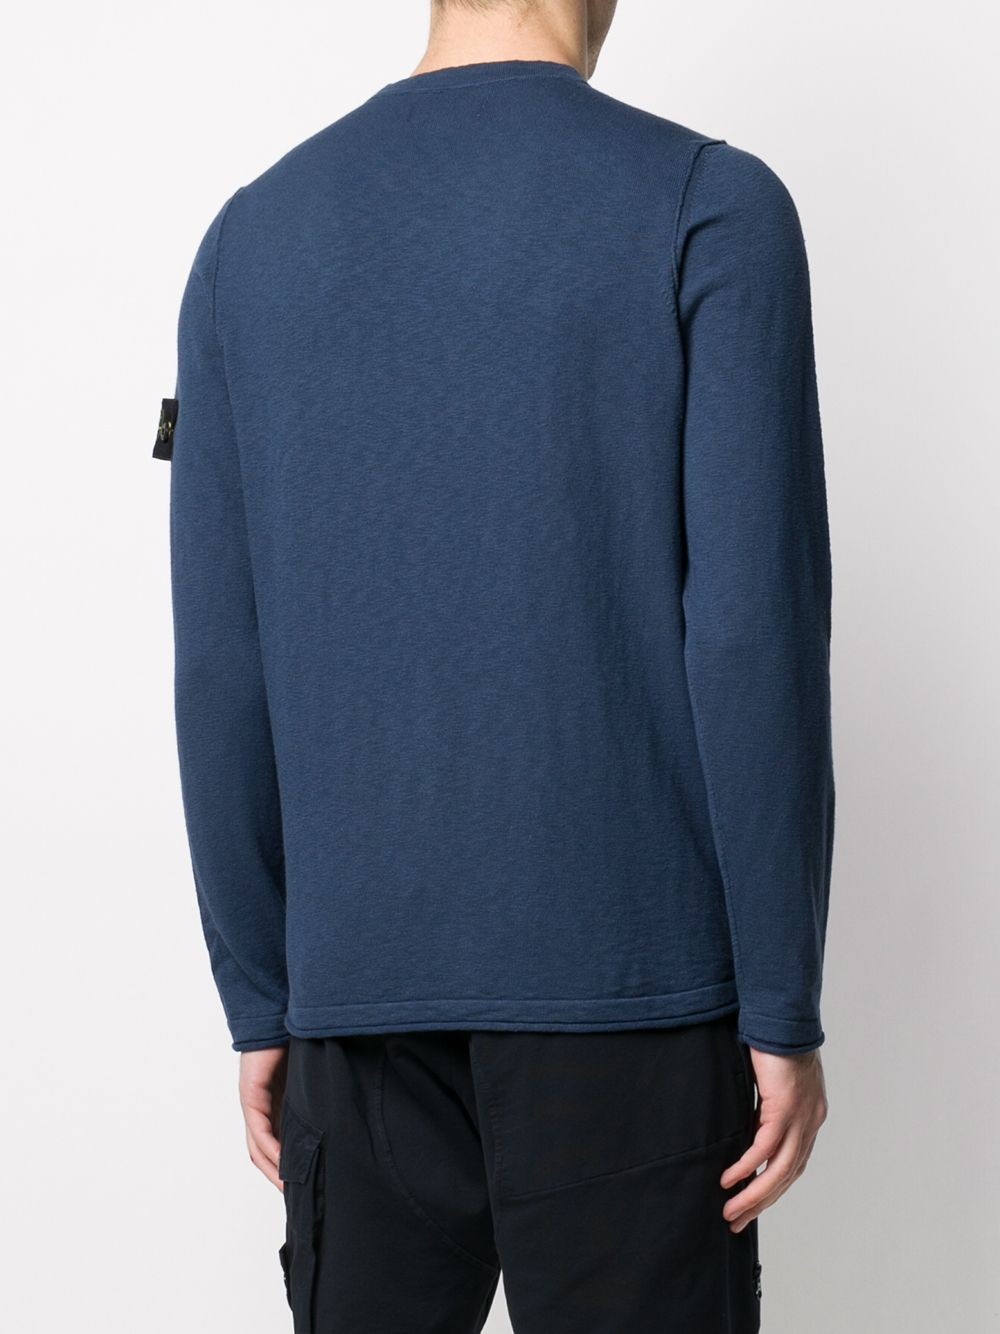 STONE ISLAND MEN KNITTED SWEATSHIRT